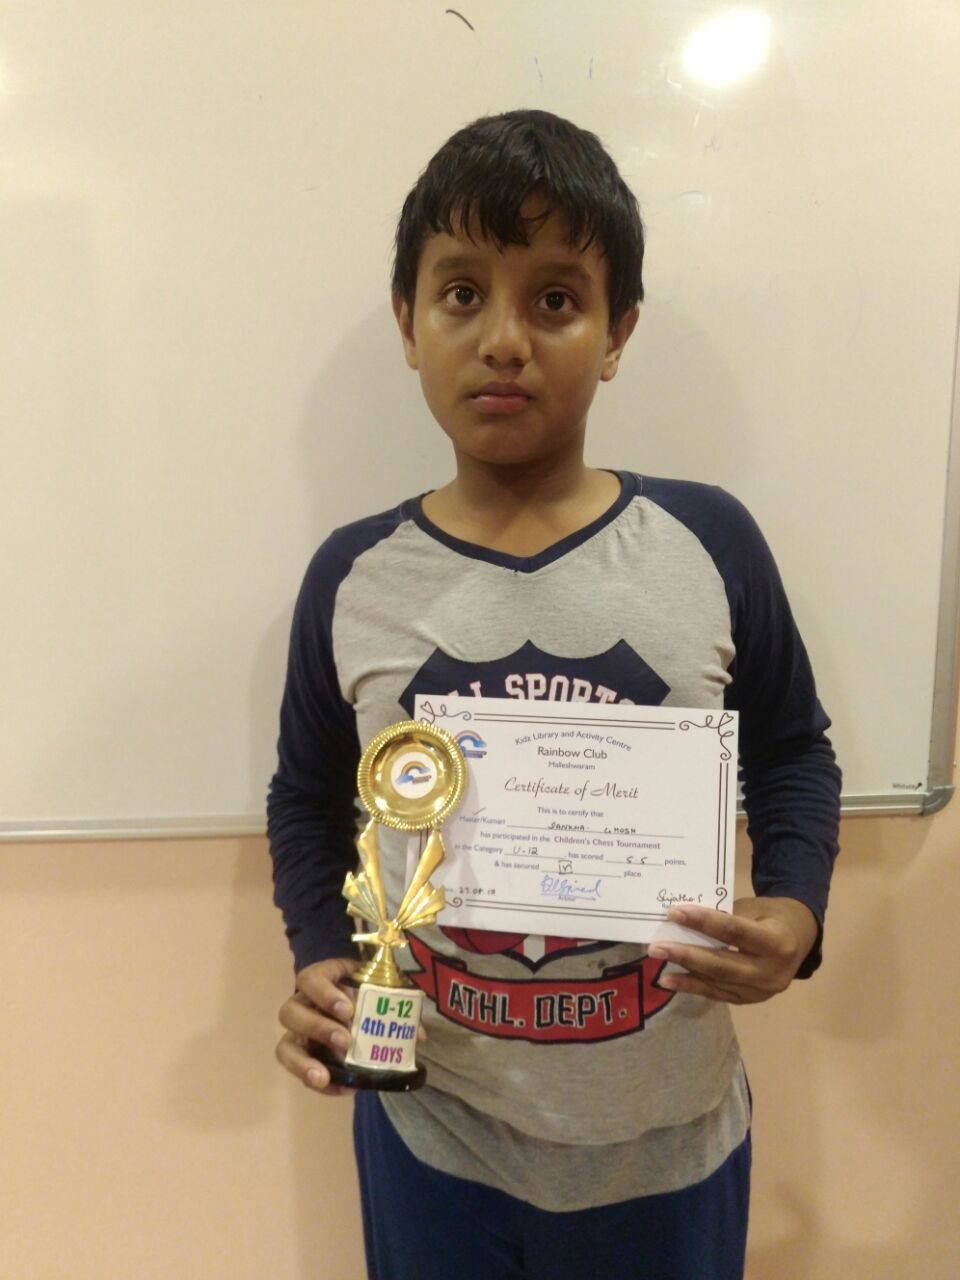 Sankha Ghosh places 4th in the U-12 Category of the Rainbow Rapid Chess Tournament with a score of 5.5/7 Rounds